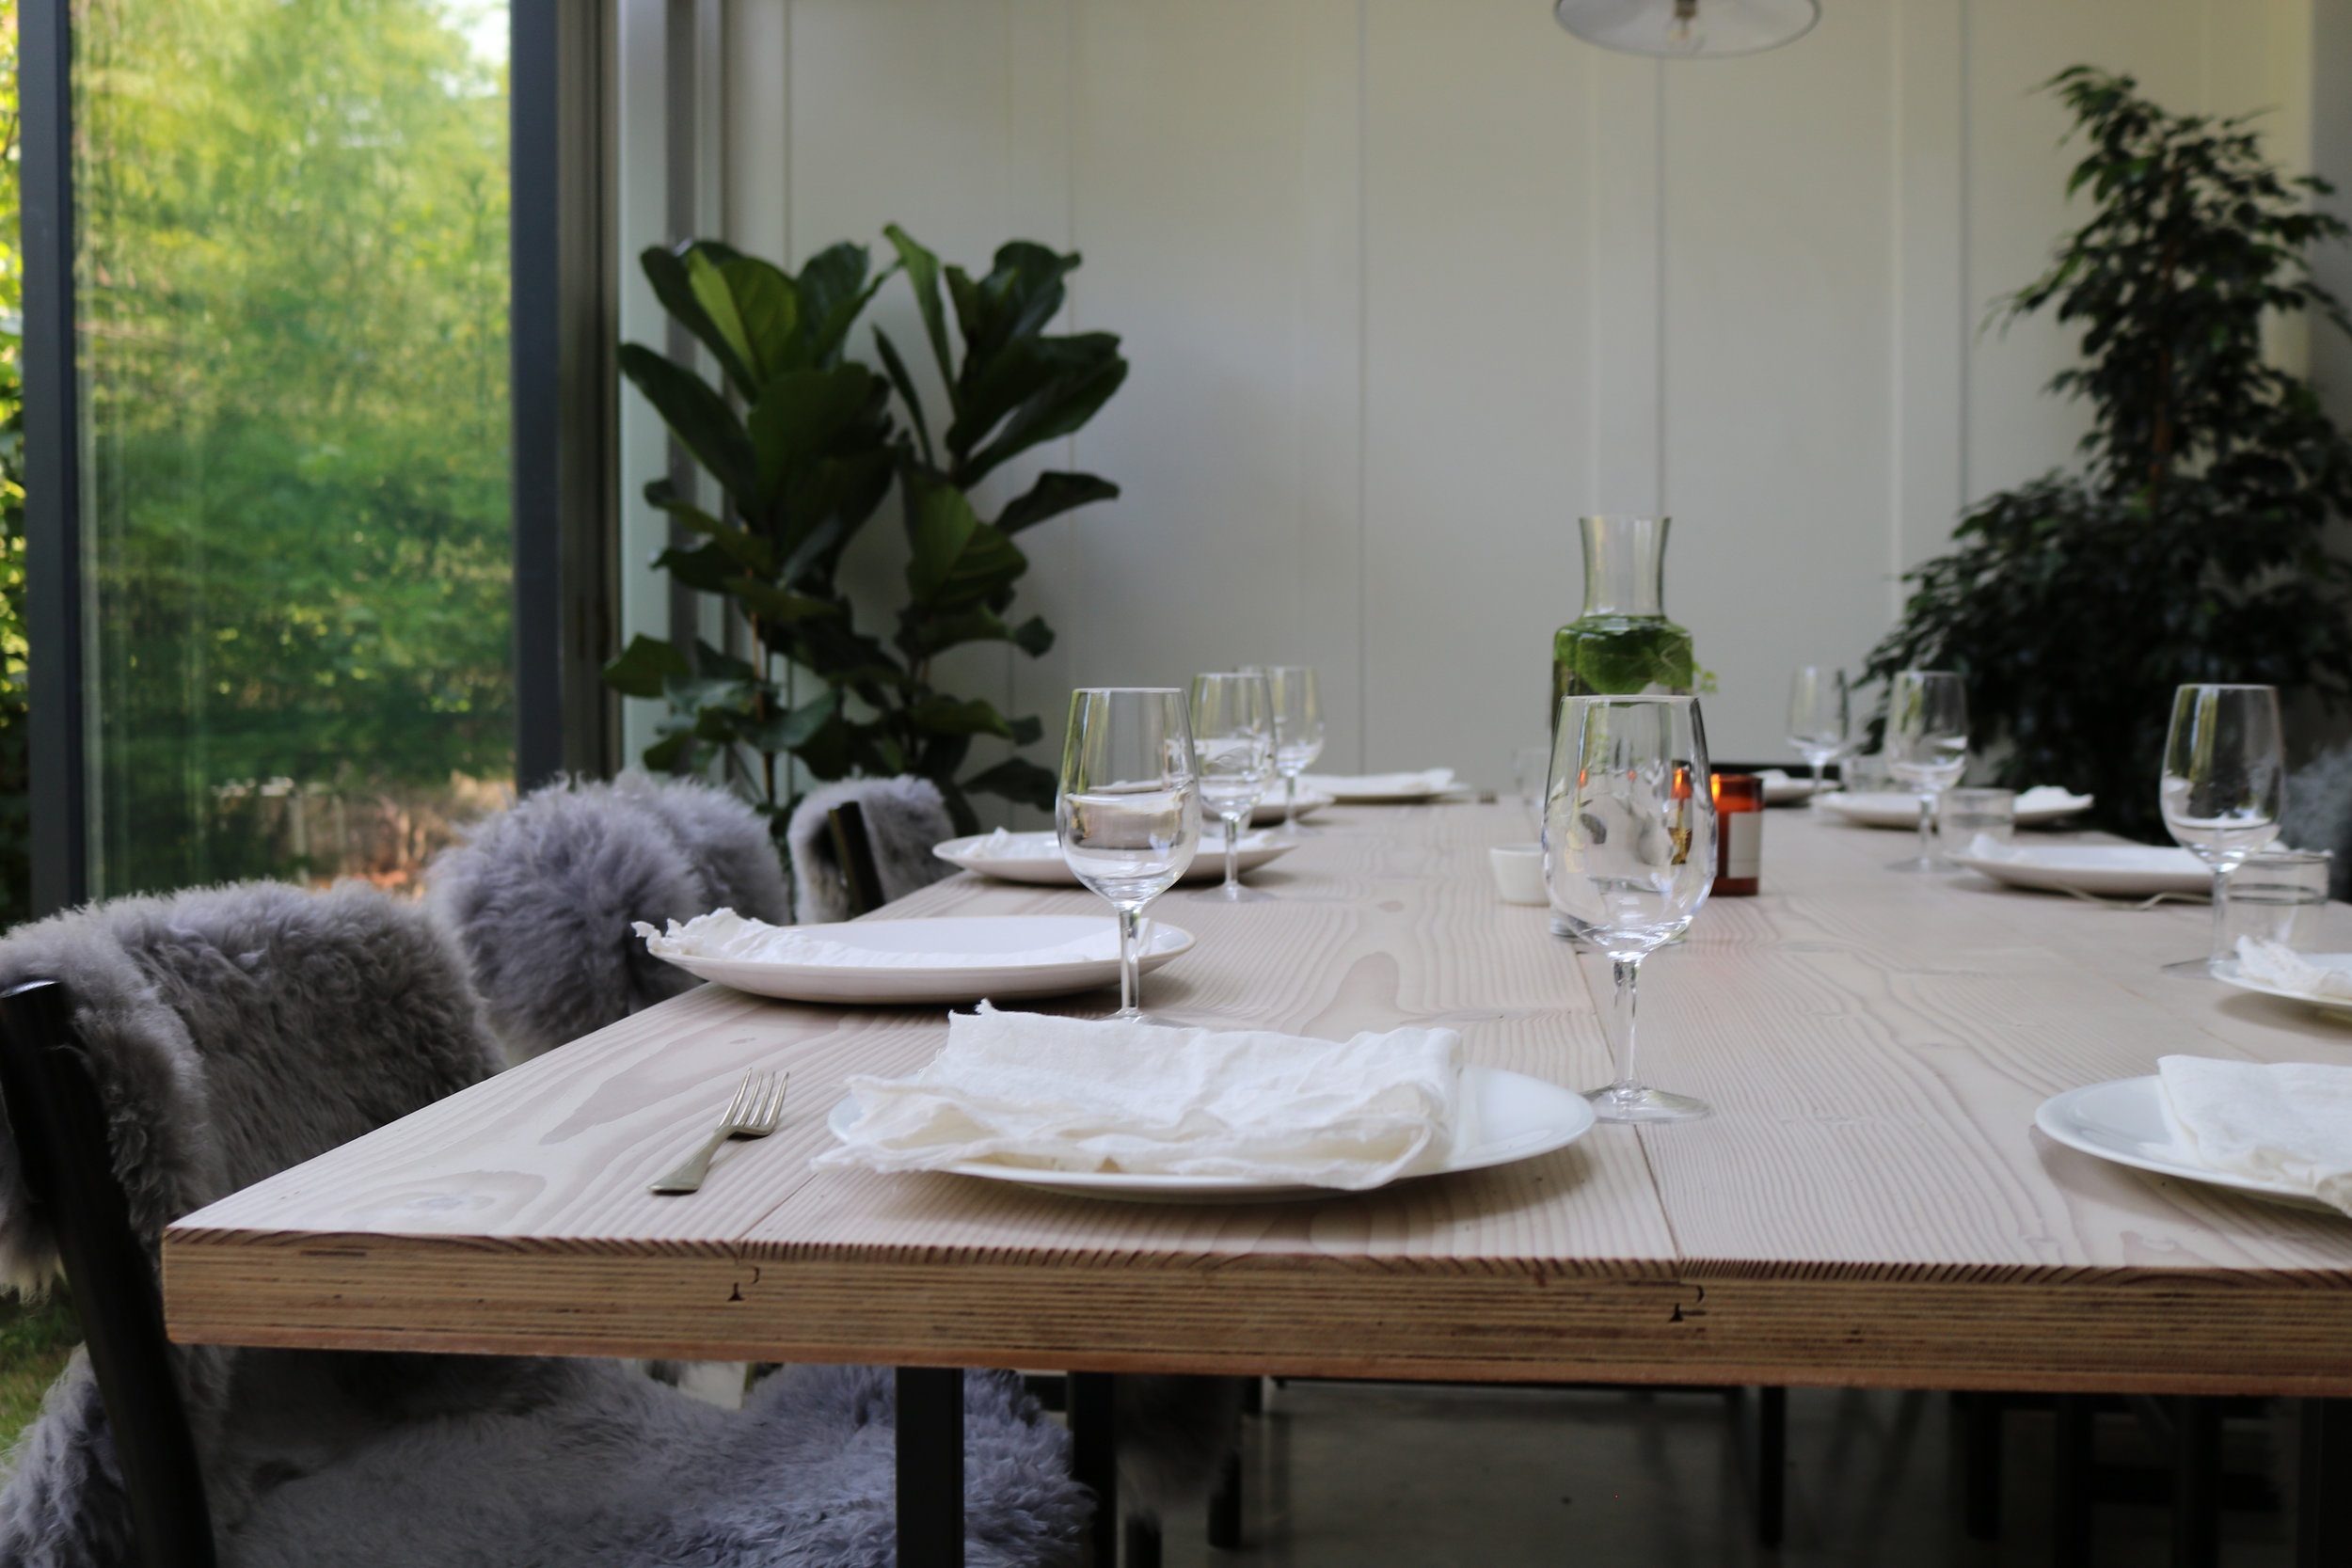 Wooden table set for a feast | London Lifestyle Photoshoot | Creative Direction